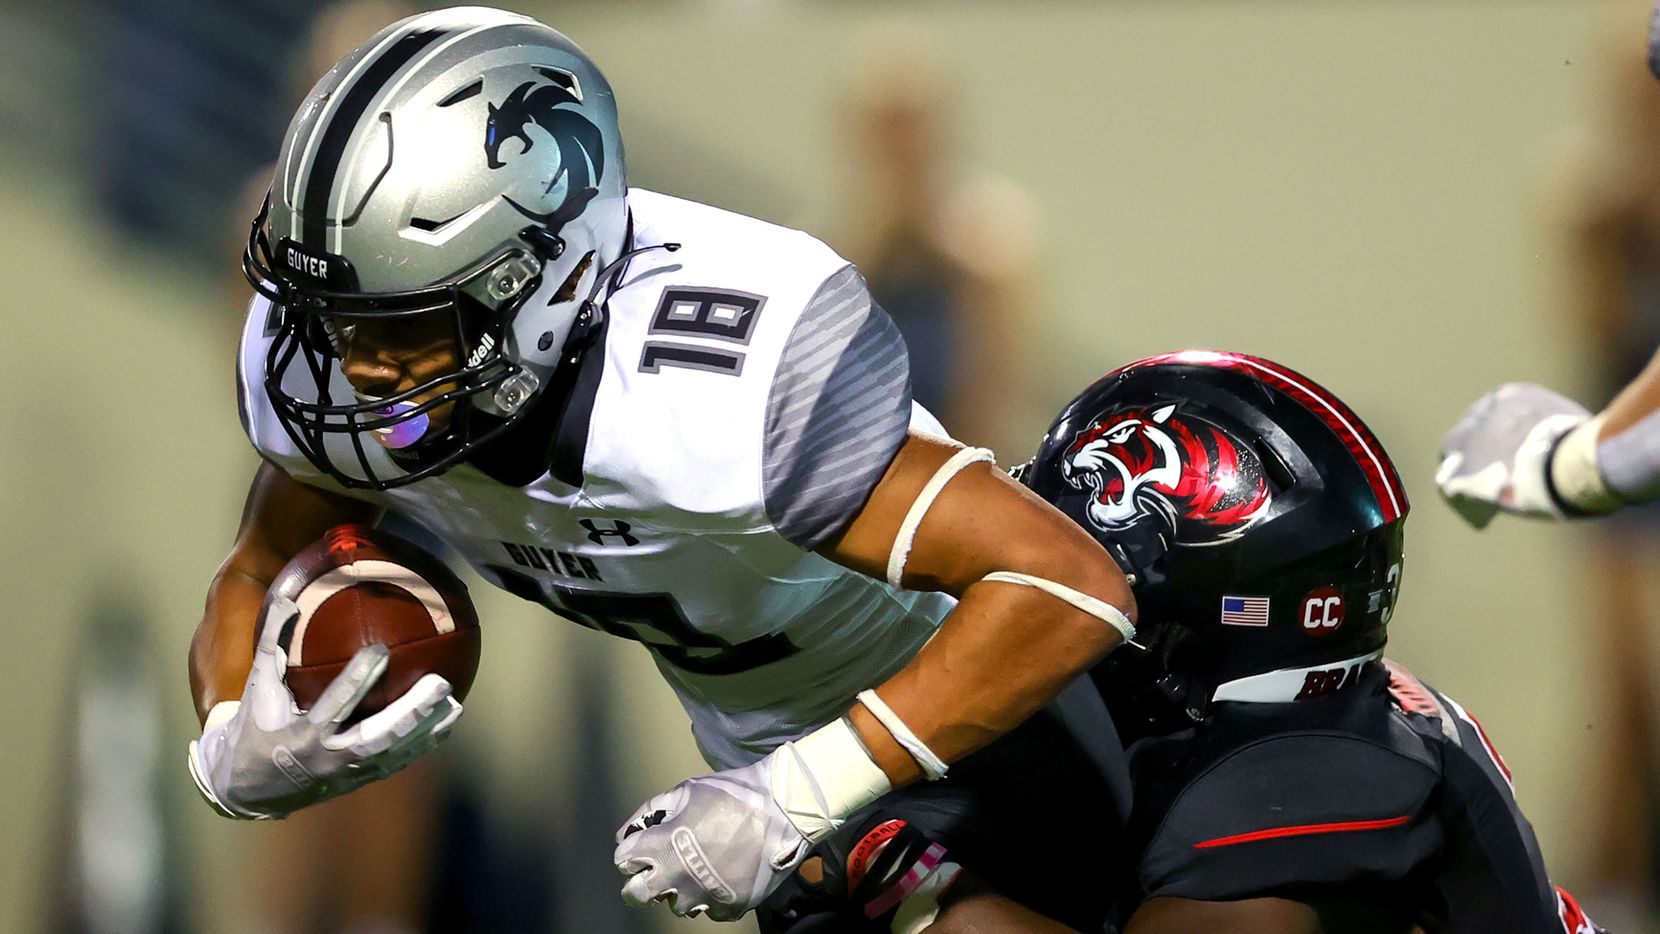 Denton Guyer kick returner Eli Bowen (18) is tackled by Denton Braswell linebacker Alan Tony-Itoyah (R) during the first half in a District 5-6A high school football game played at the C.H. Collins Complex on Friday, October 8, 2021, in Denton. (Steve Nurenberg/Special Contributor)